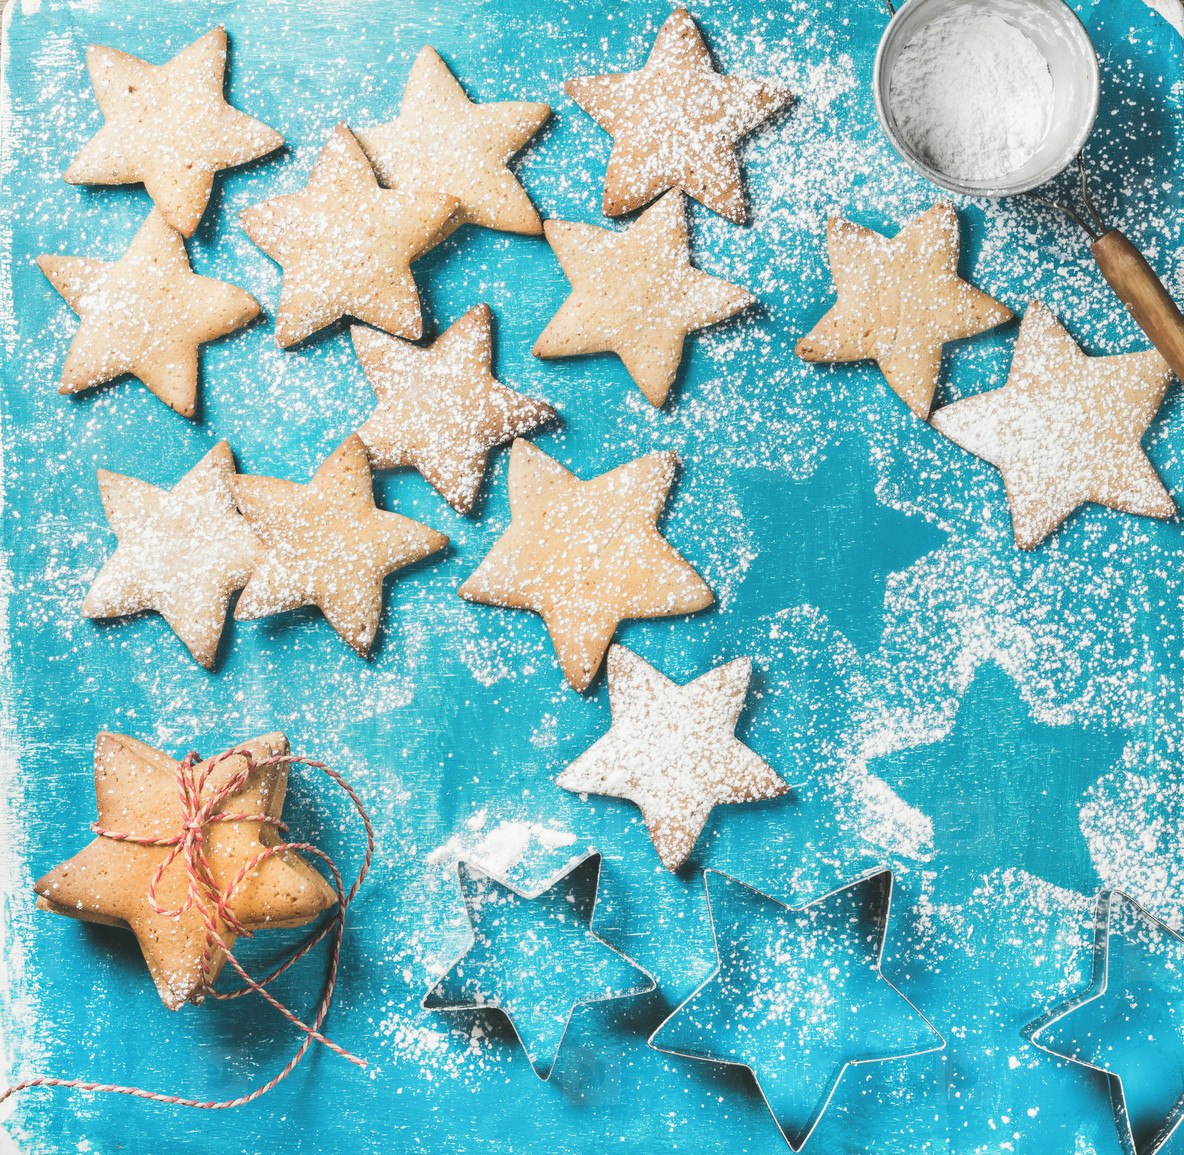 Sweet gingerbread cookies with sugar powder and metal shapes